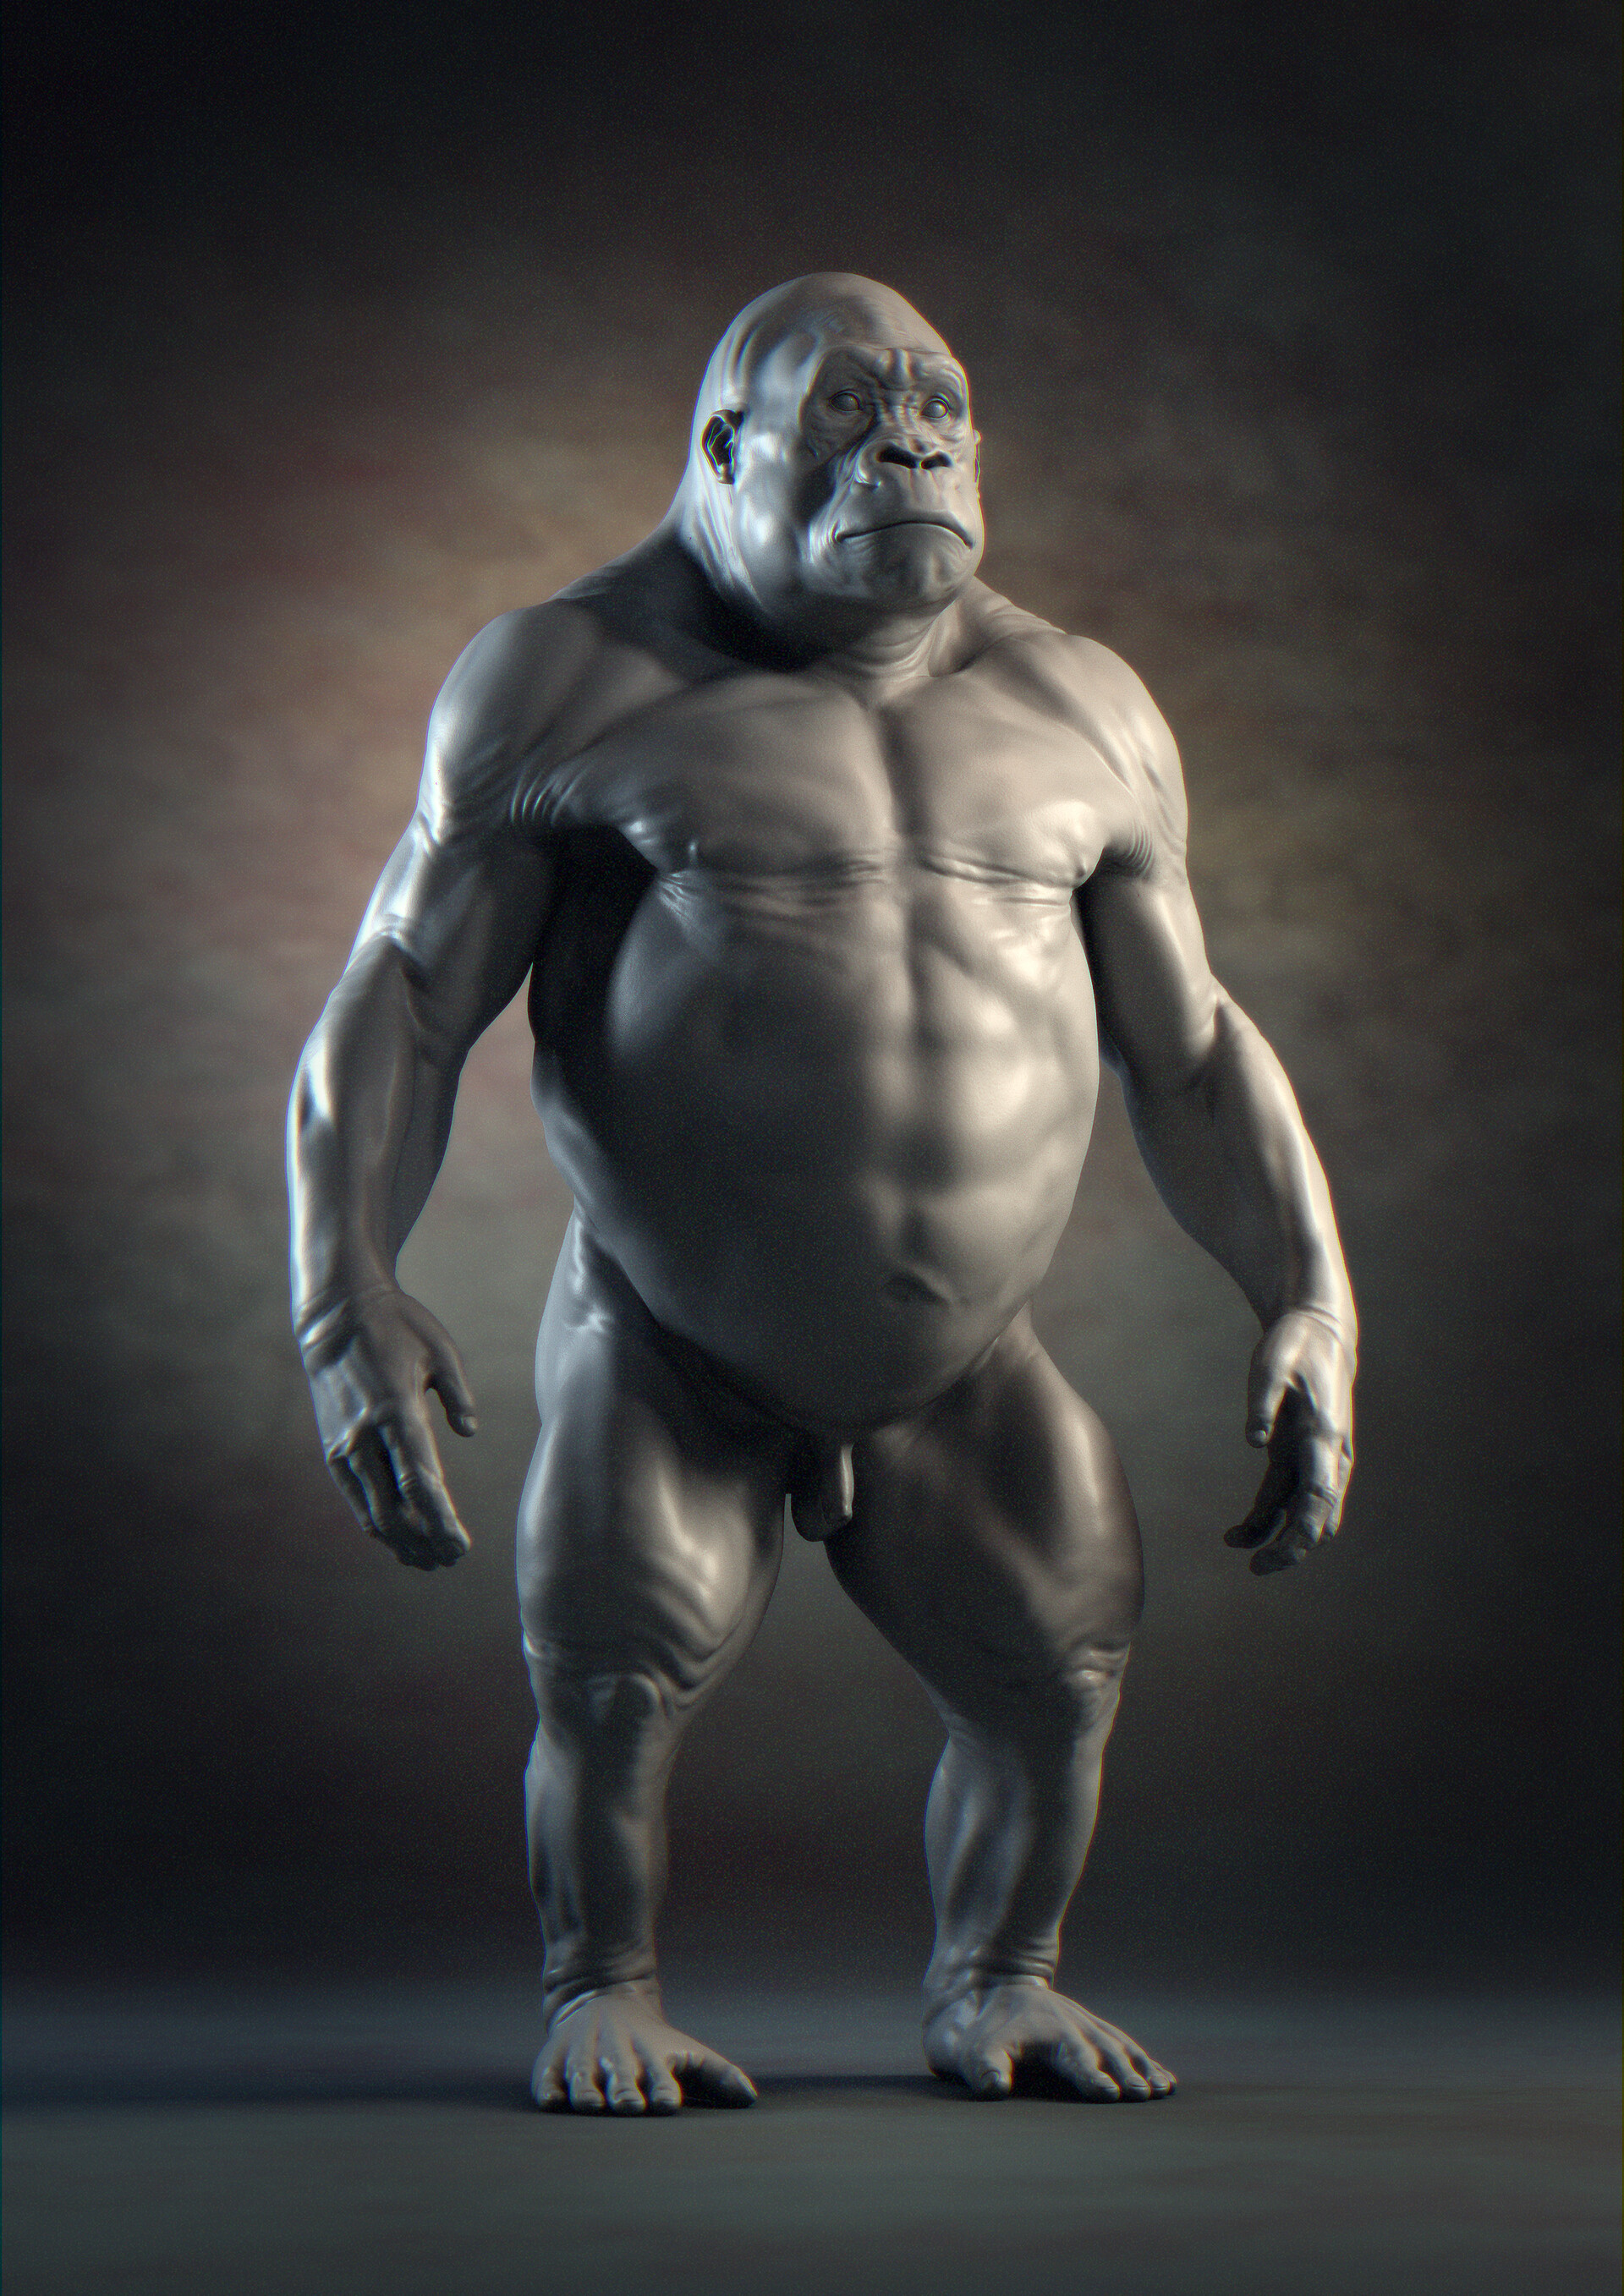 Gorilla anatomy. Sculpted in ZBrush and render in Maya with Arnold